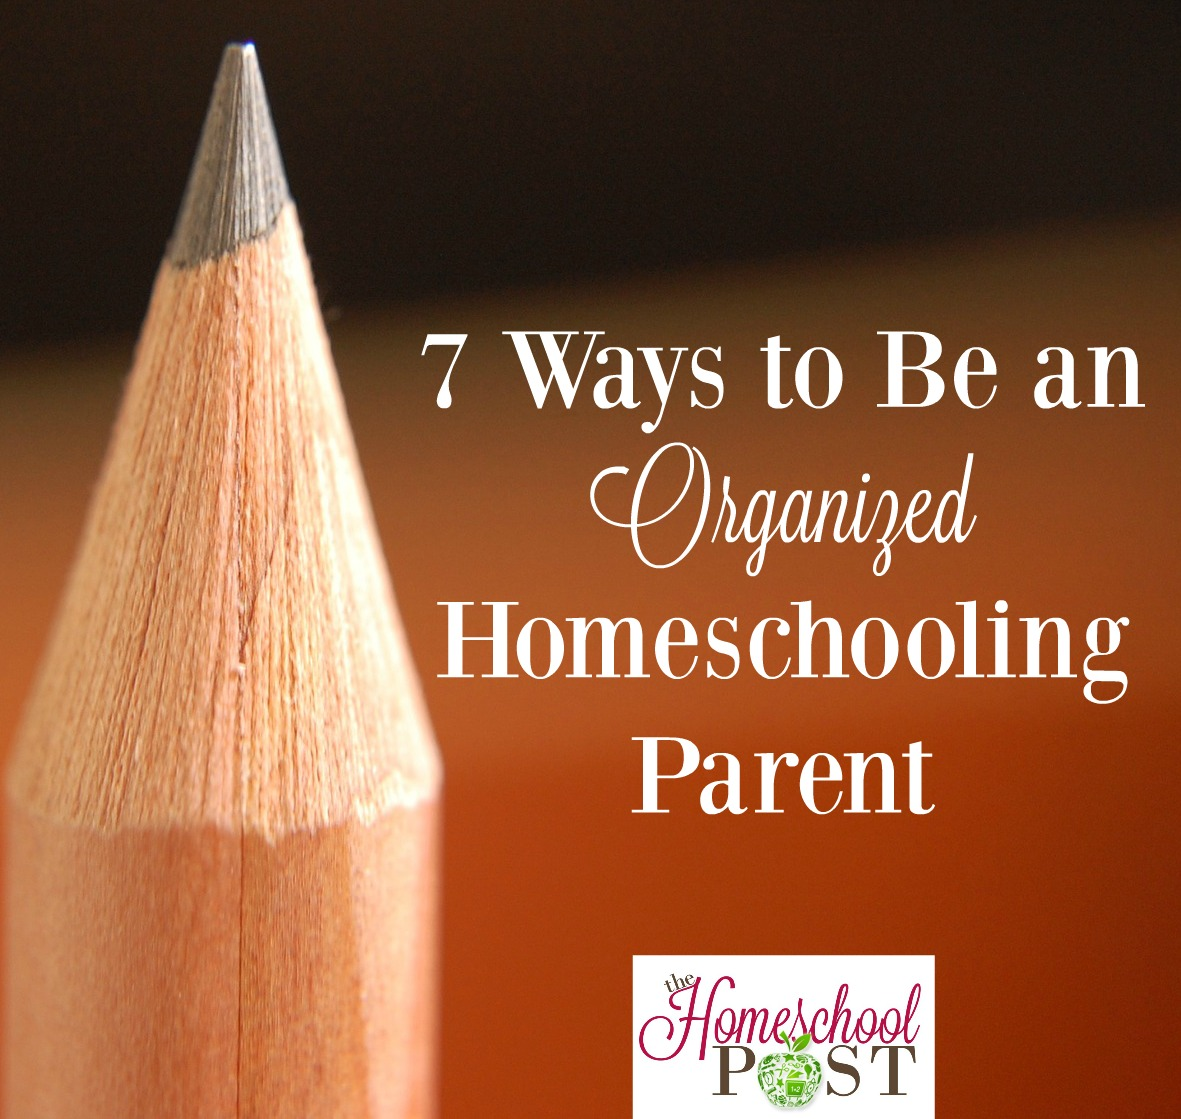 7 ways you can be a more organize homeschooling parent. hsbapost.com